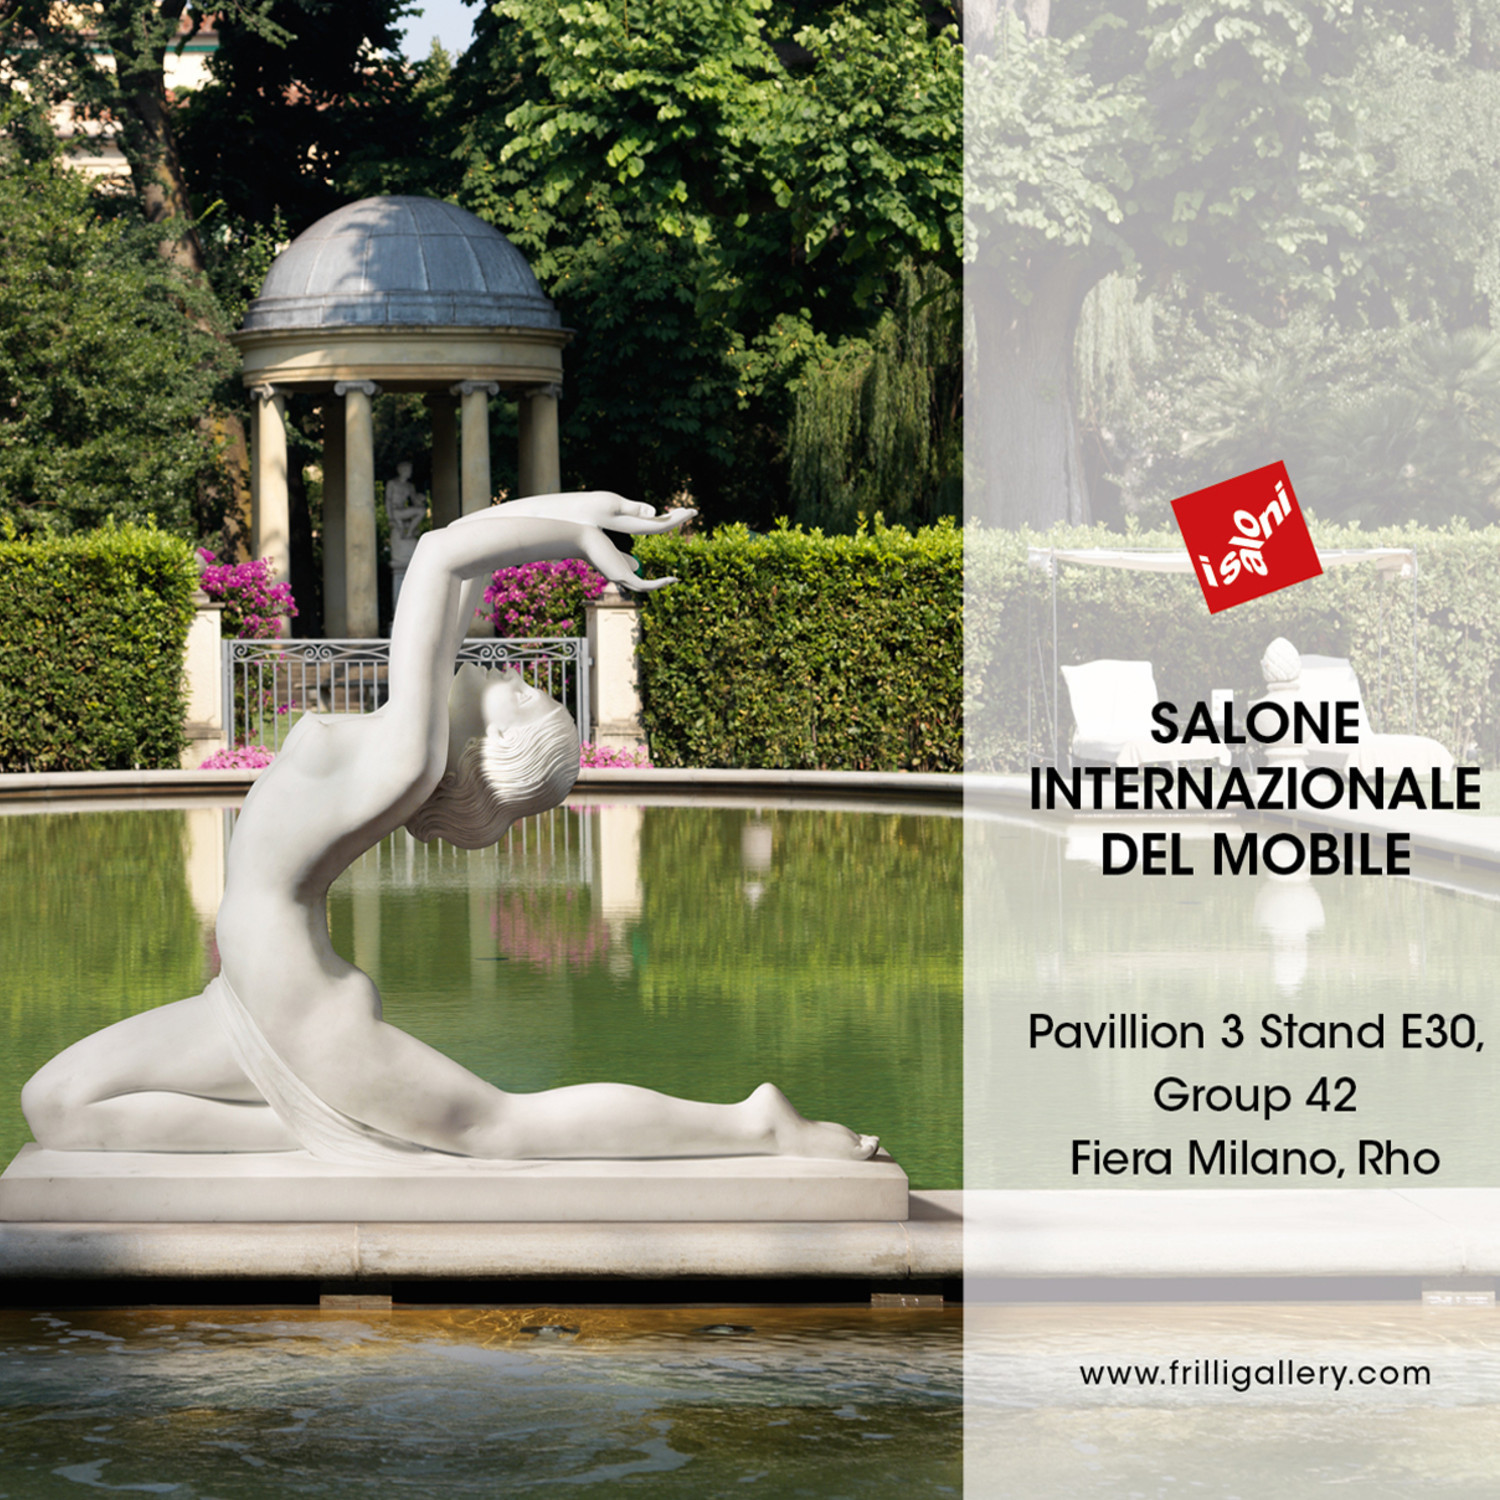 Frilli gallery sculpture art studio in florence since 1860 for Salone del mobile hotels